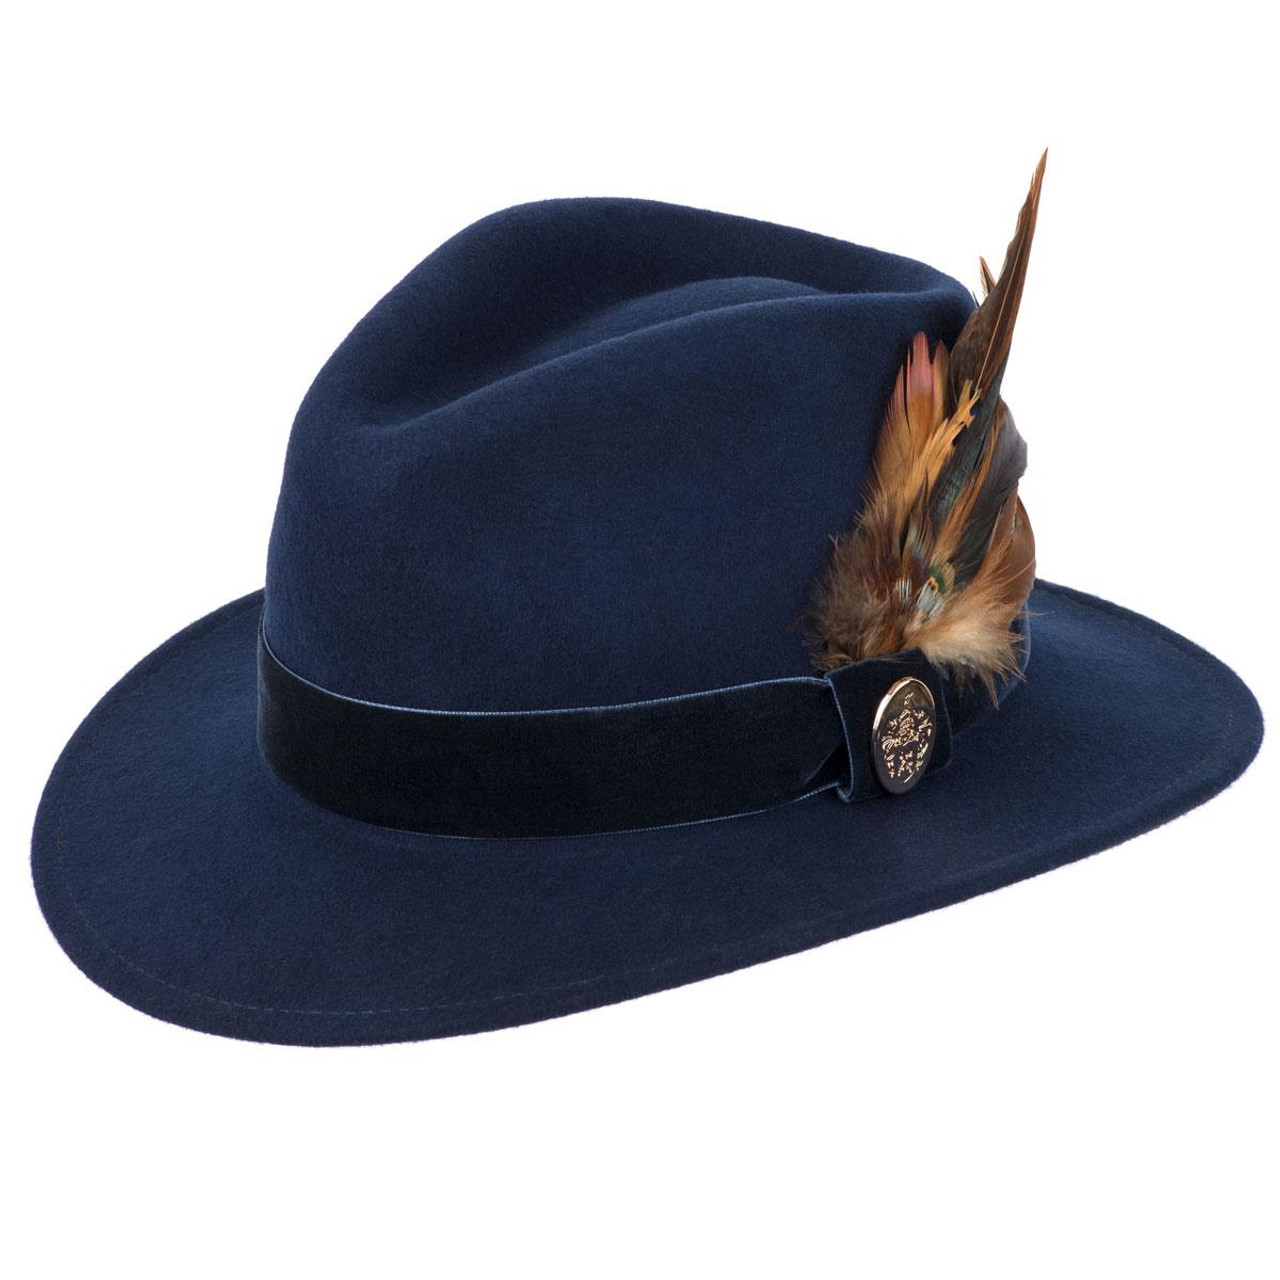 Hicks & Brown Chelsworth Fedora Coque & Pheasant